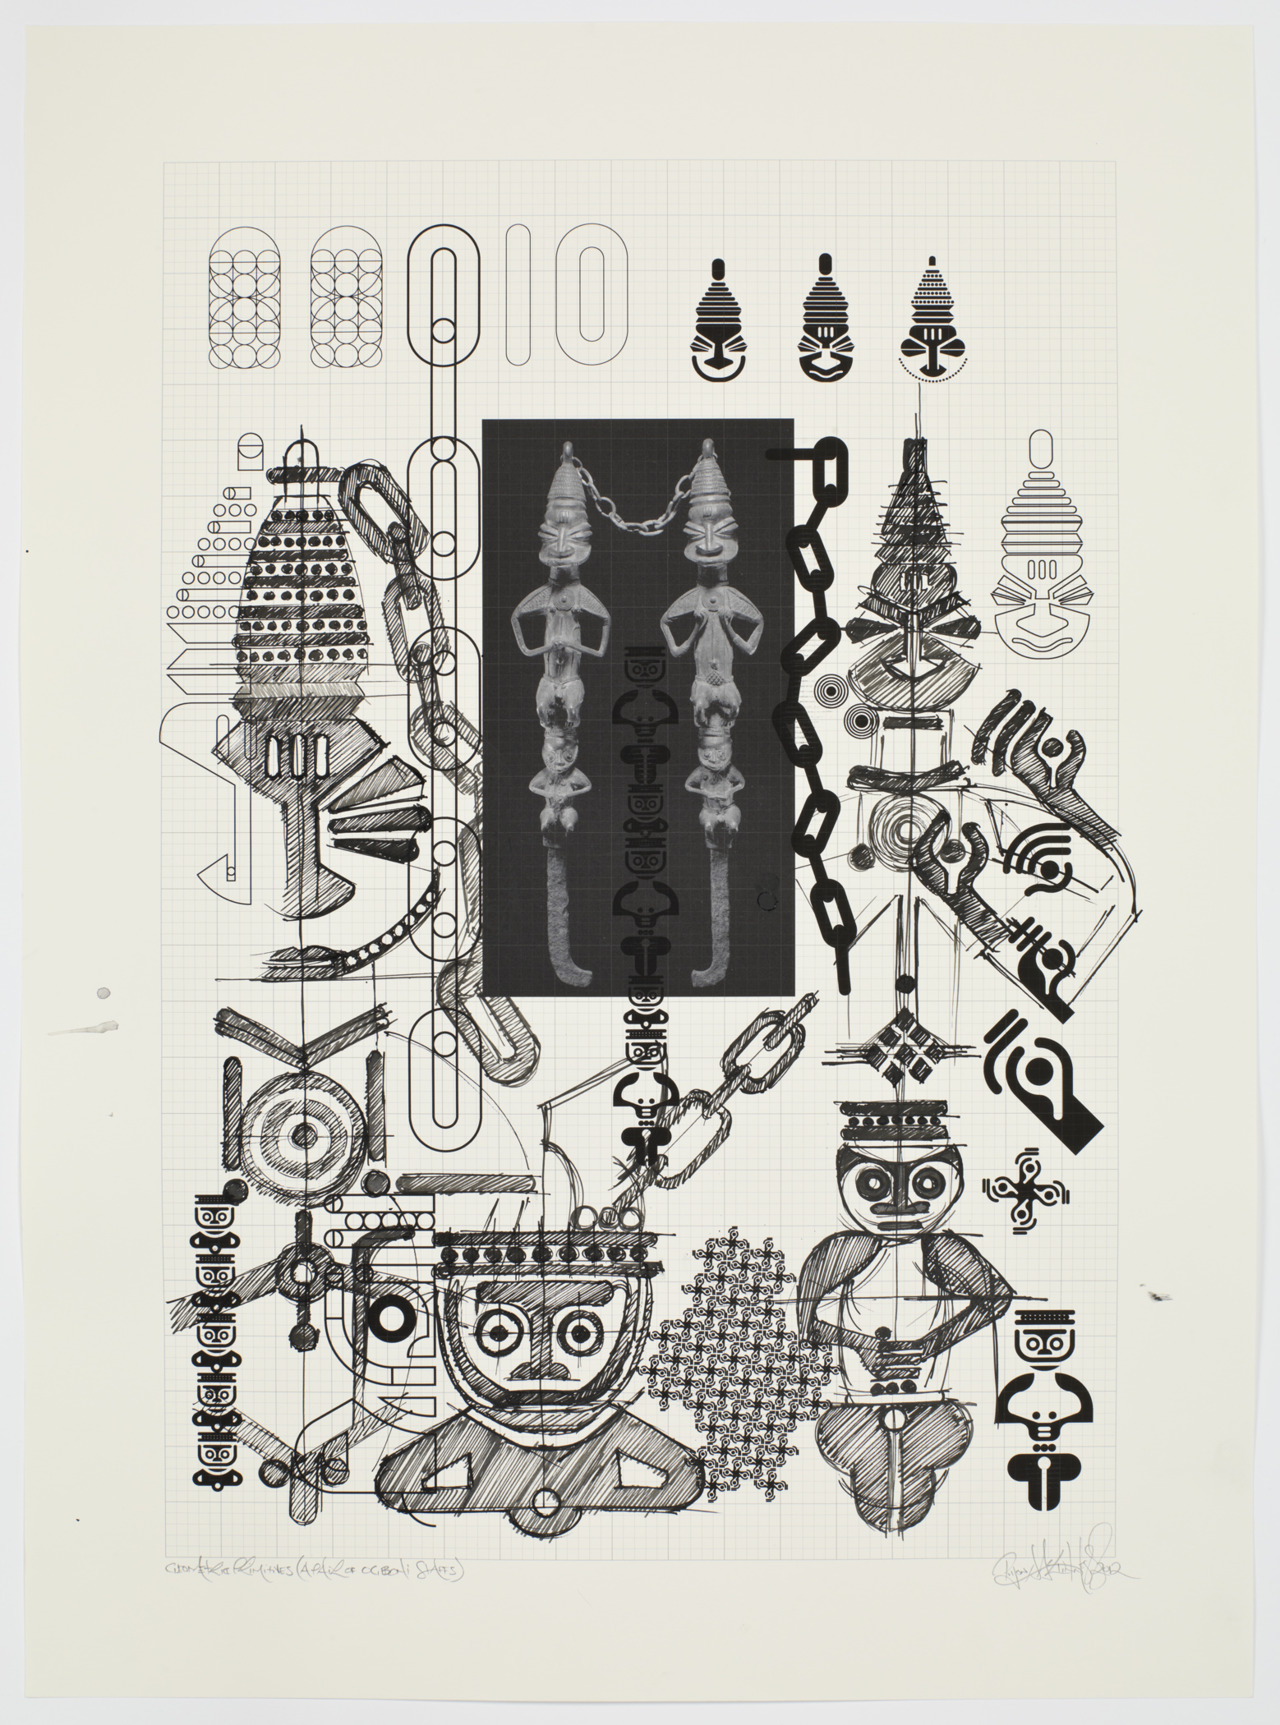 Ryan McGinness, Geometric Primitives Sketch Process (Pair of Obgoni Staffs), 2012 // Ink on Paper // 30 x 22 inches // Published by Pace Editions, Inc.